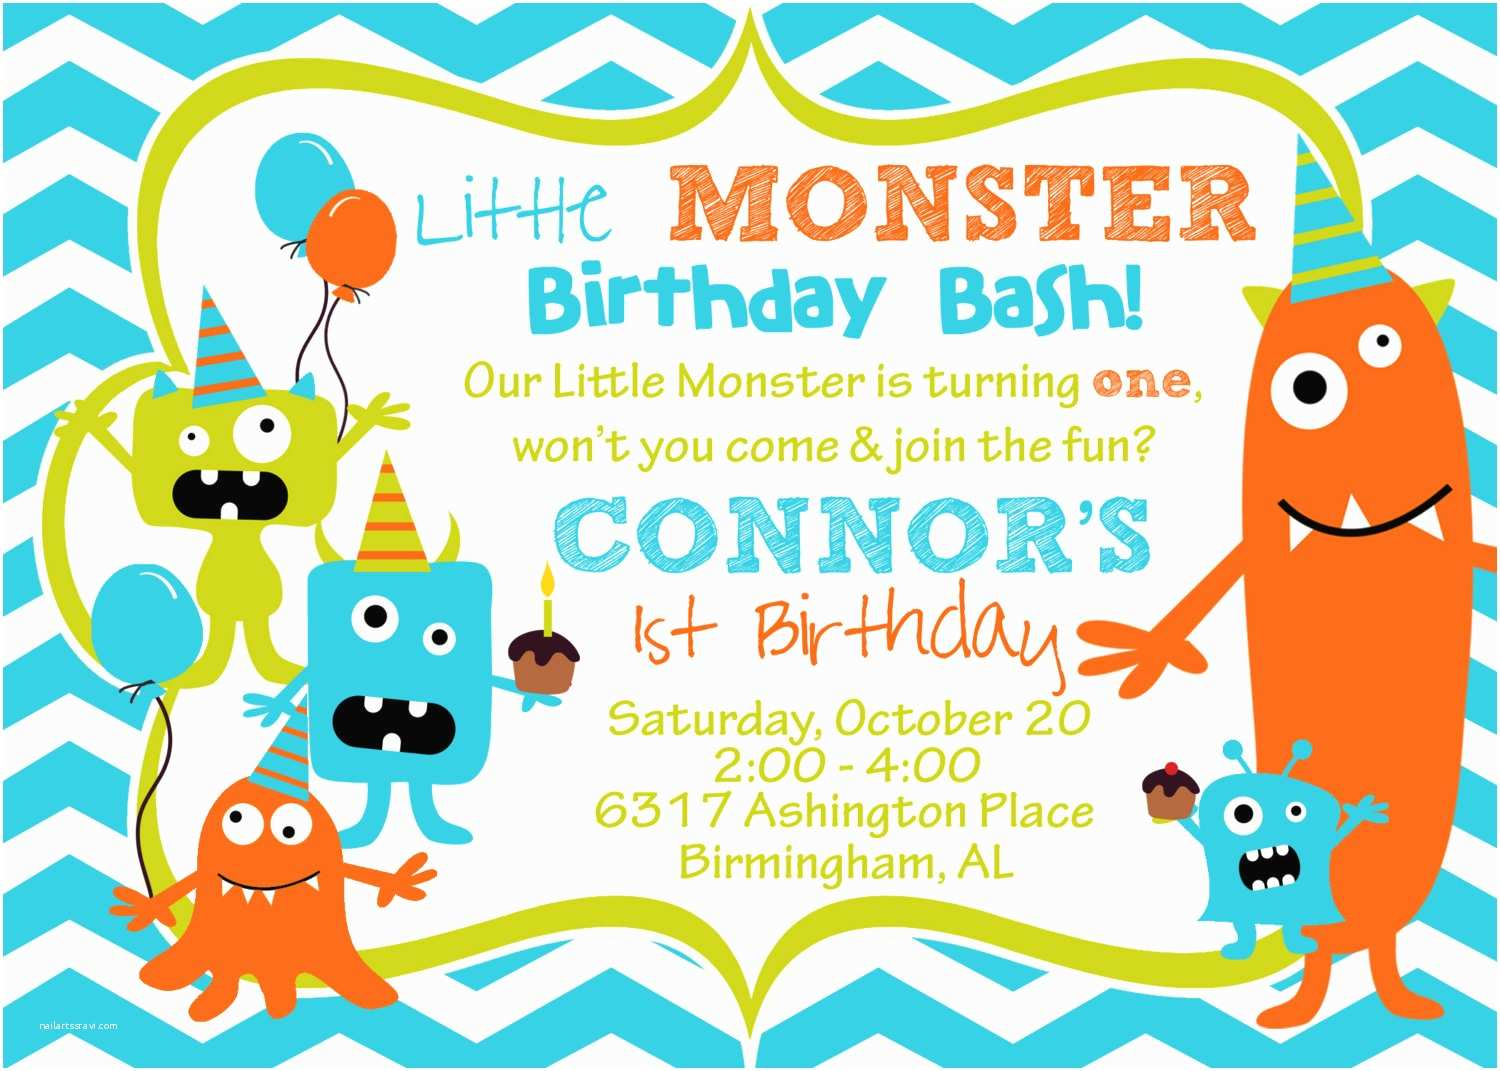 Monster Party Invitations Cupcake Monster Bash Birthday Party by Burleygirldesigns